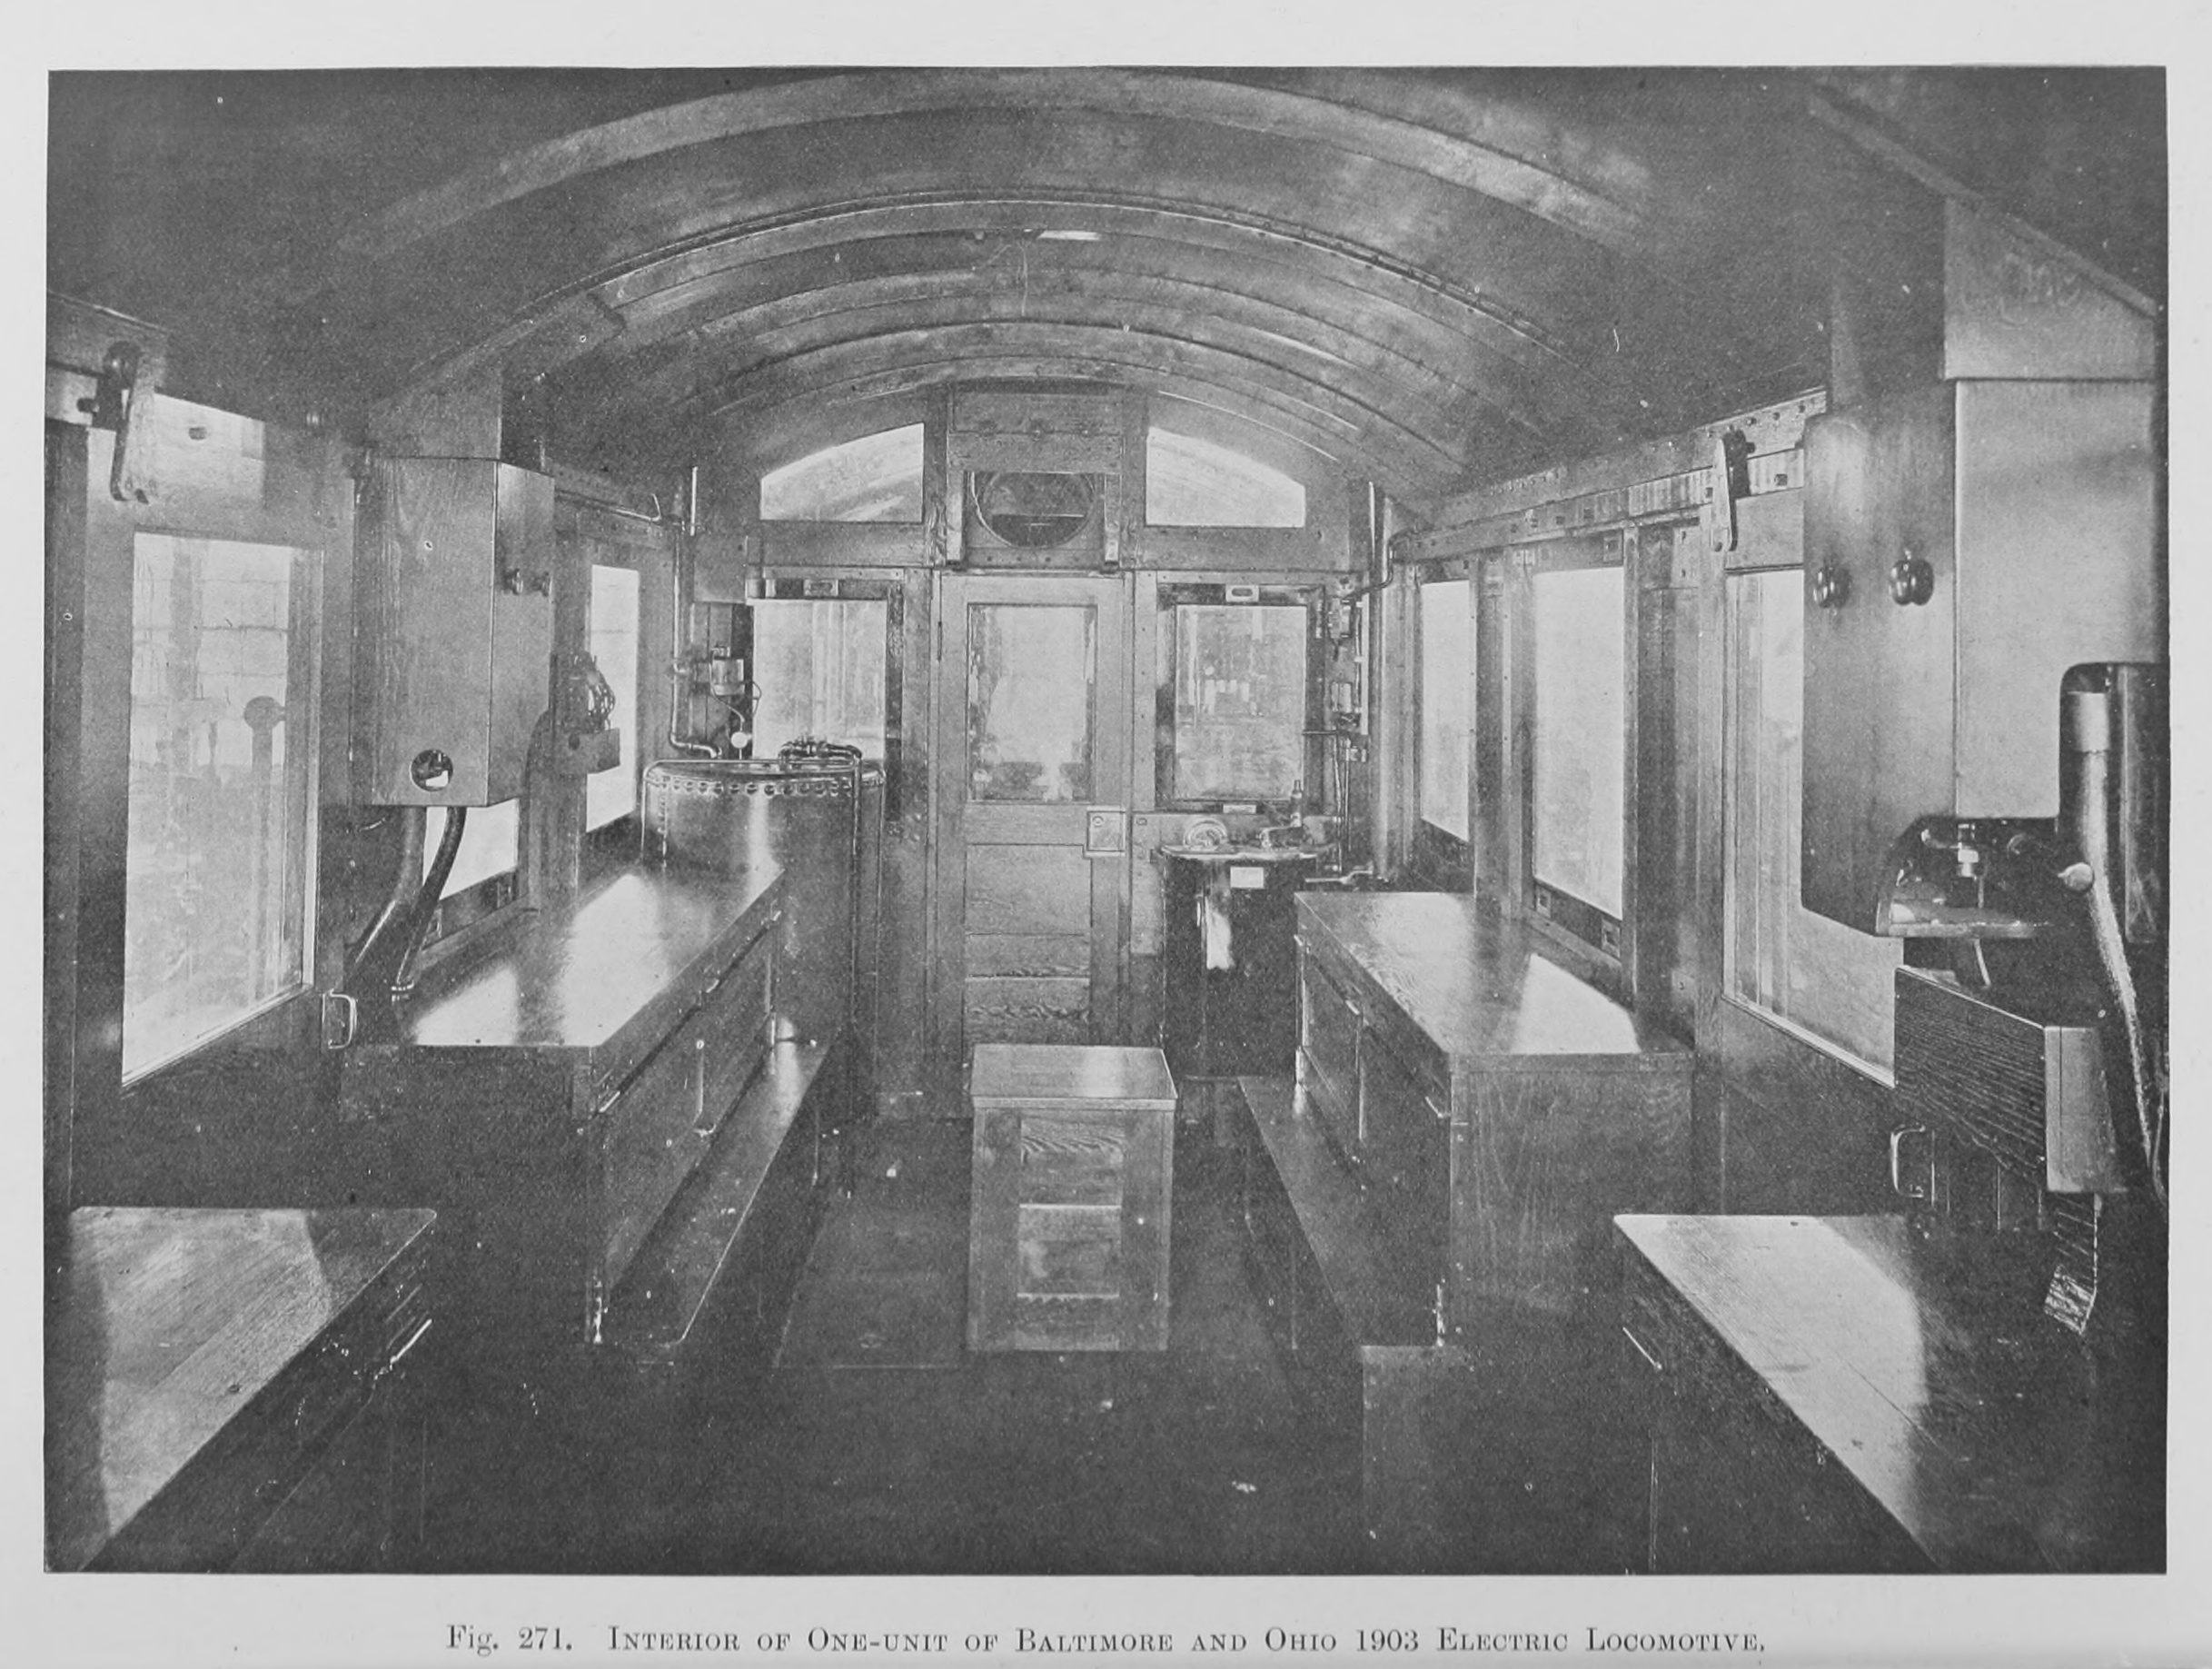 file 271  interior of one